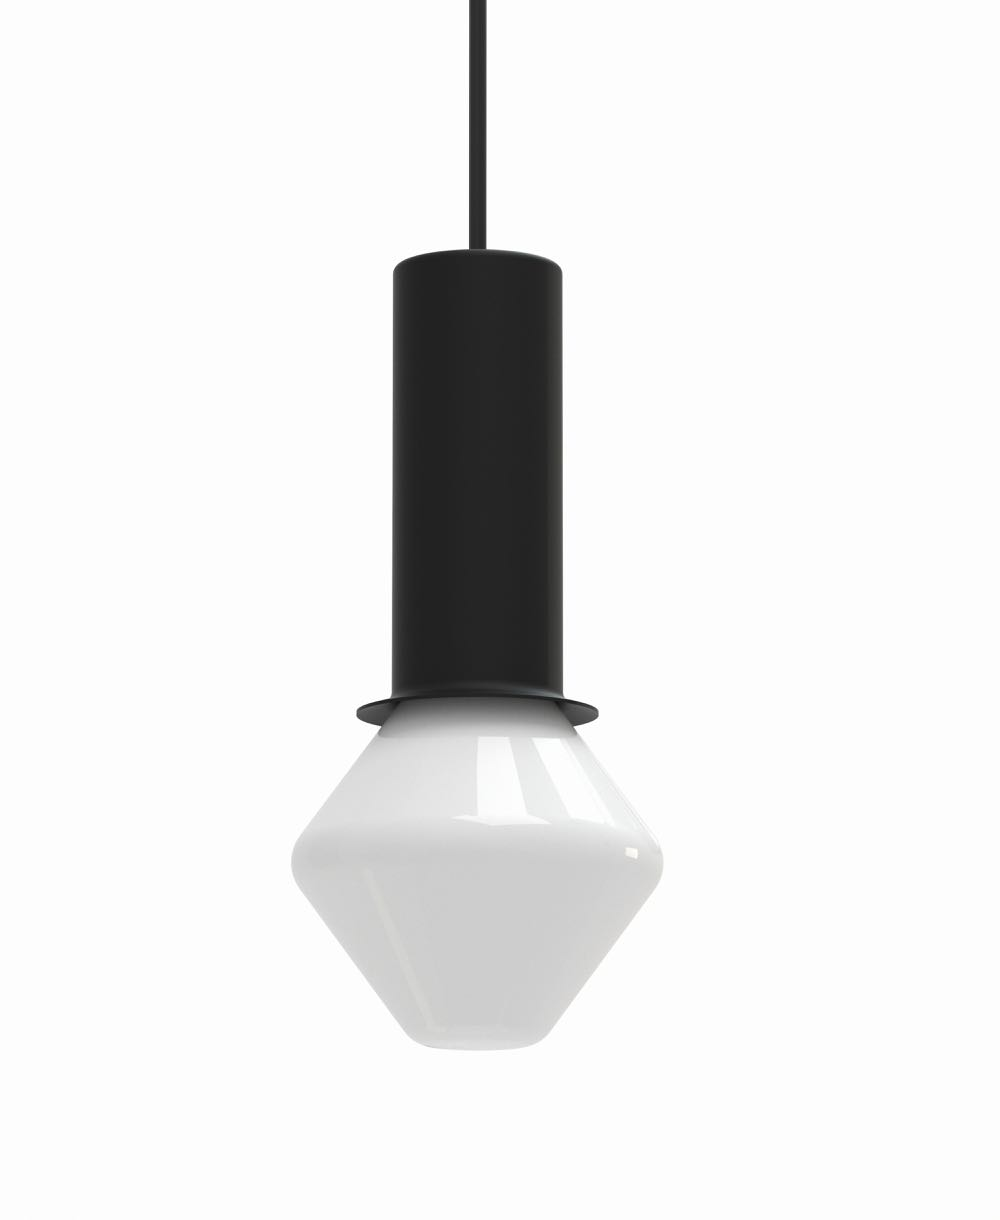 Wirkkala's TW003 pendant lamp from 1960 has recently been reissued by Artek. Photo courtesy of Artek.